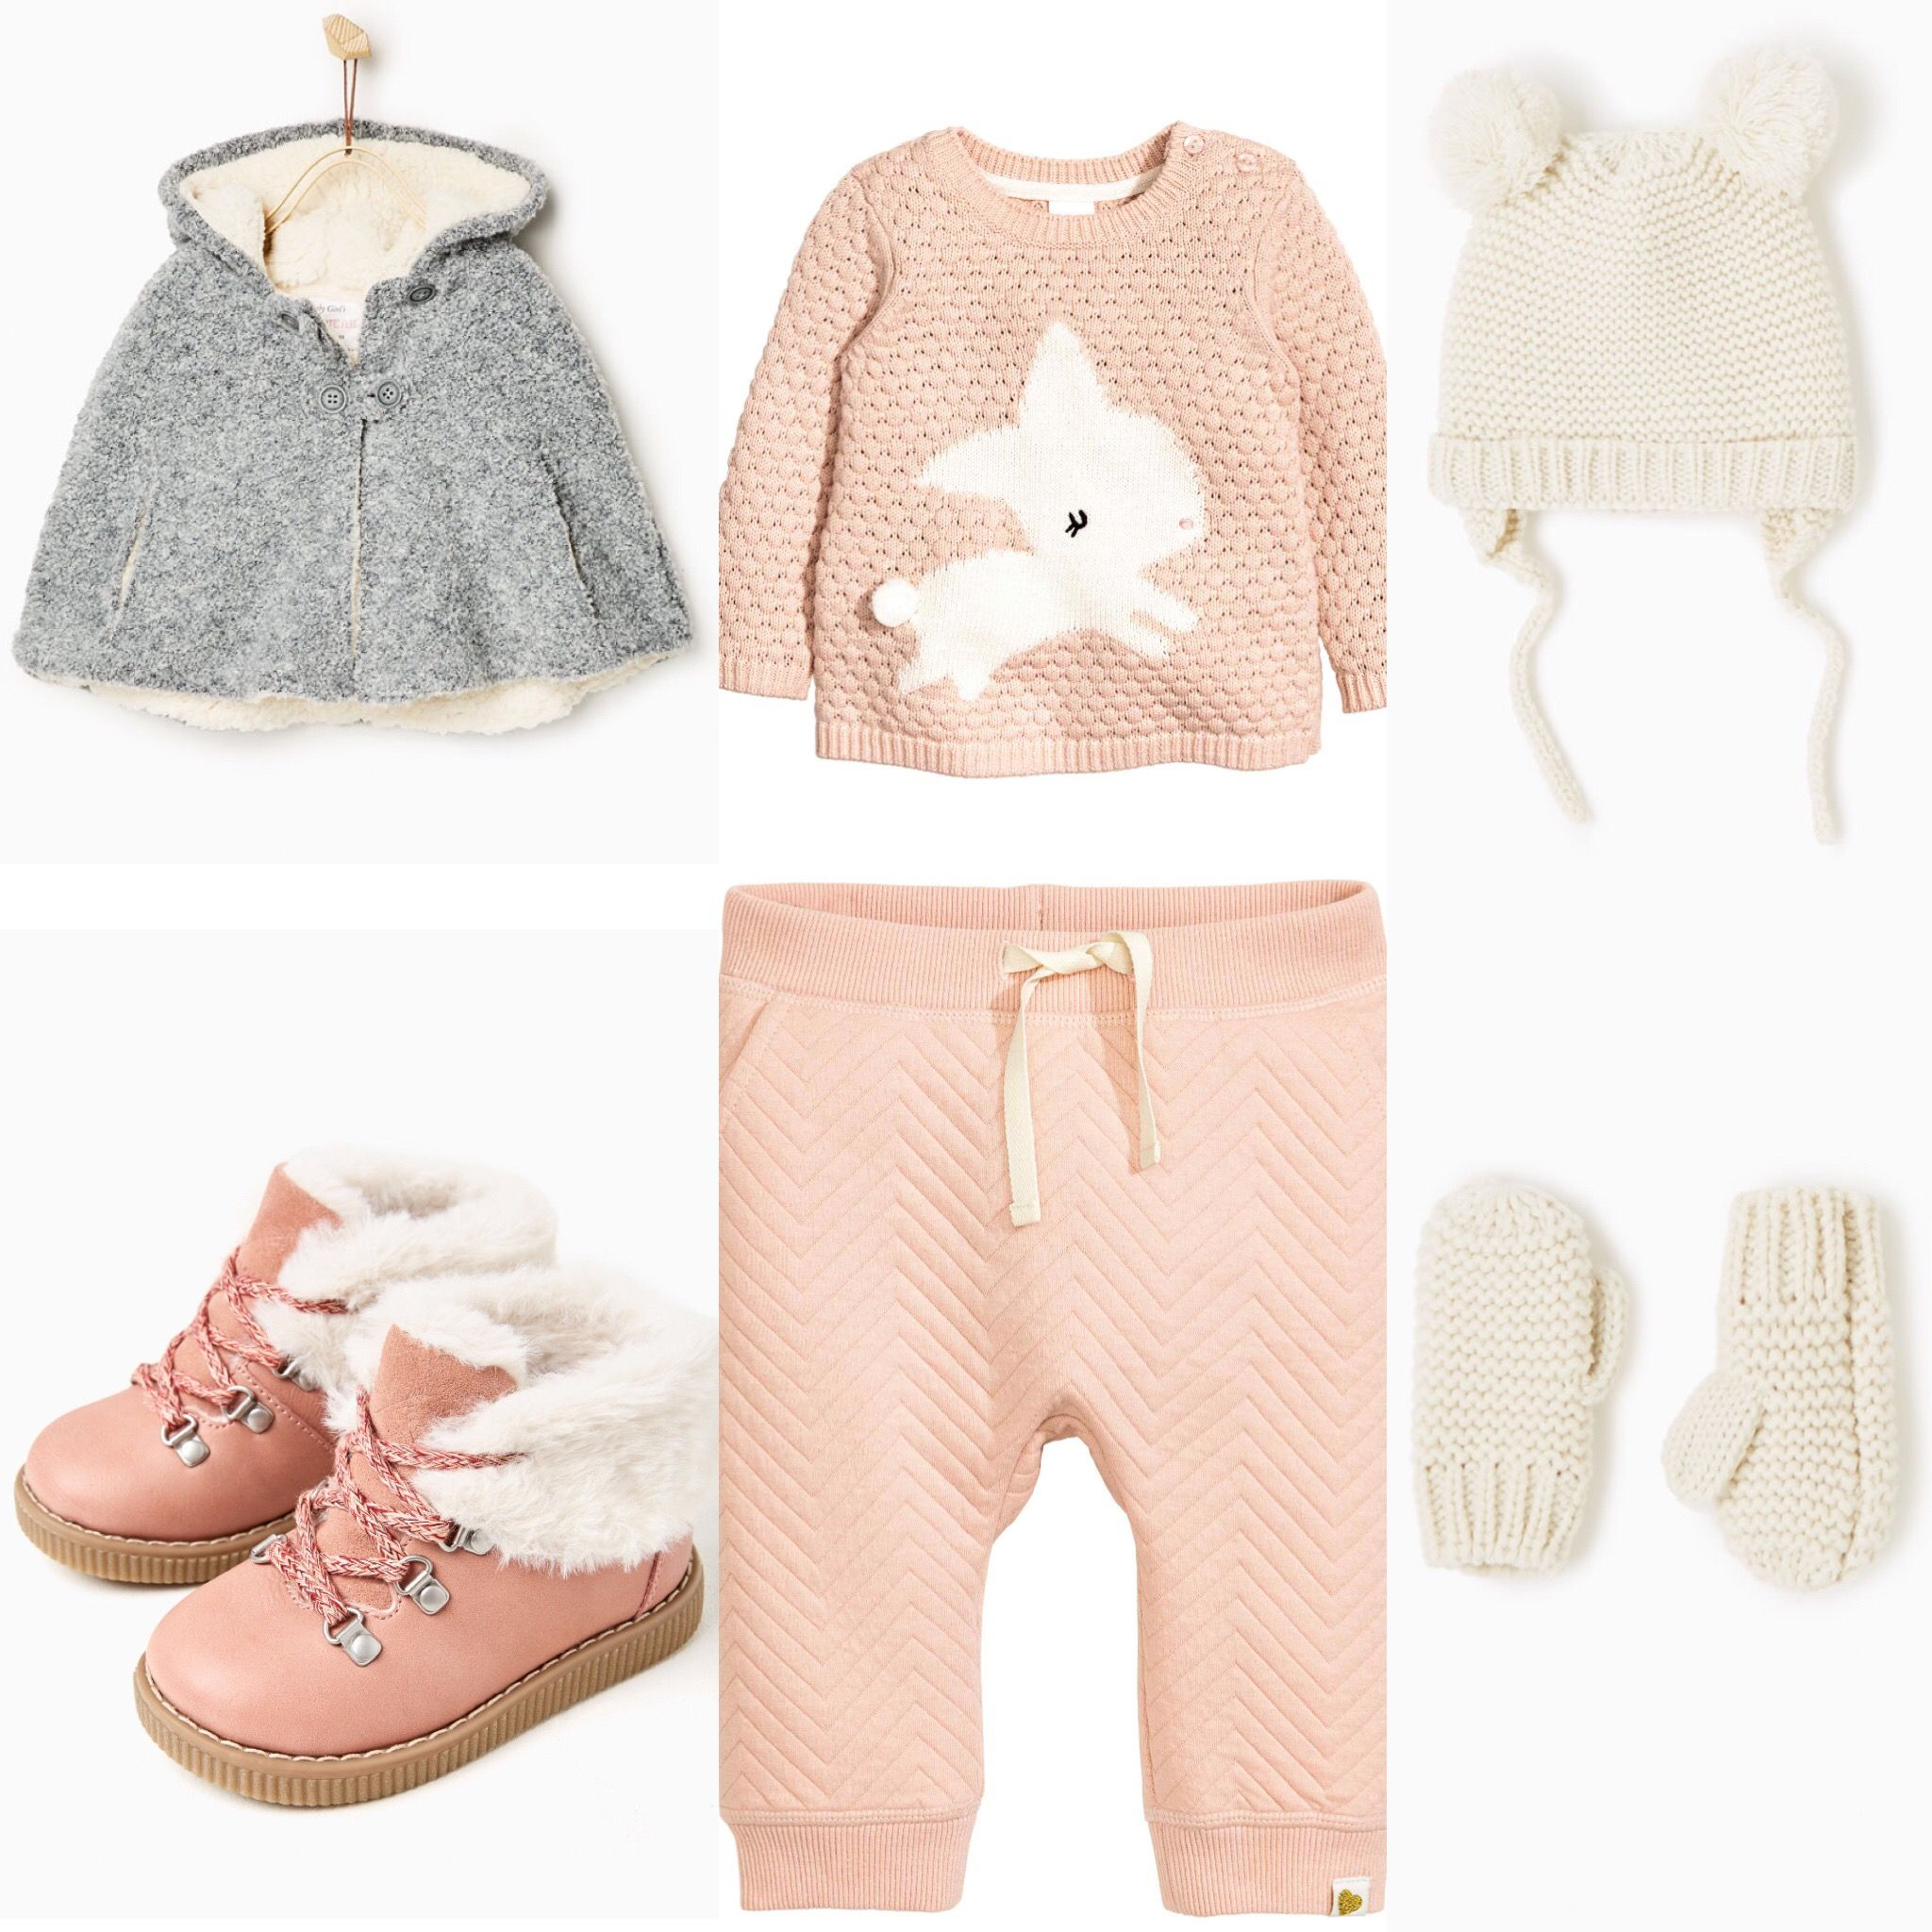 dc52d447f64e Baby girl winter outfit Zara H M 2016 fall collections. Grey cape style  coat